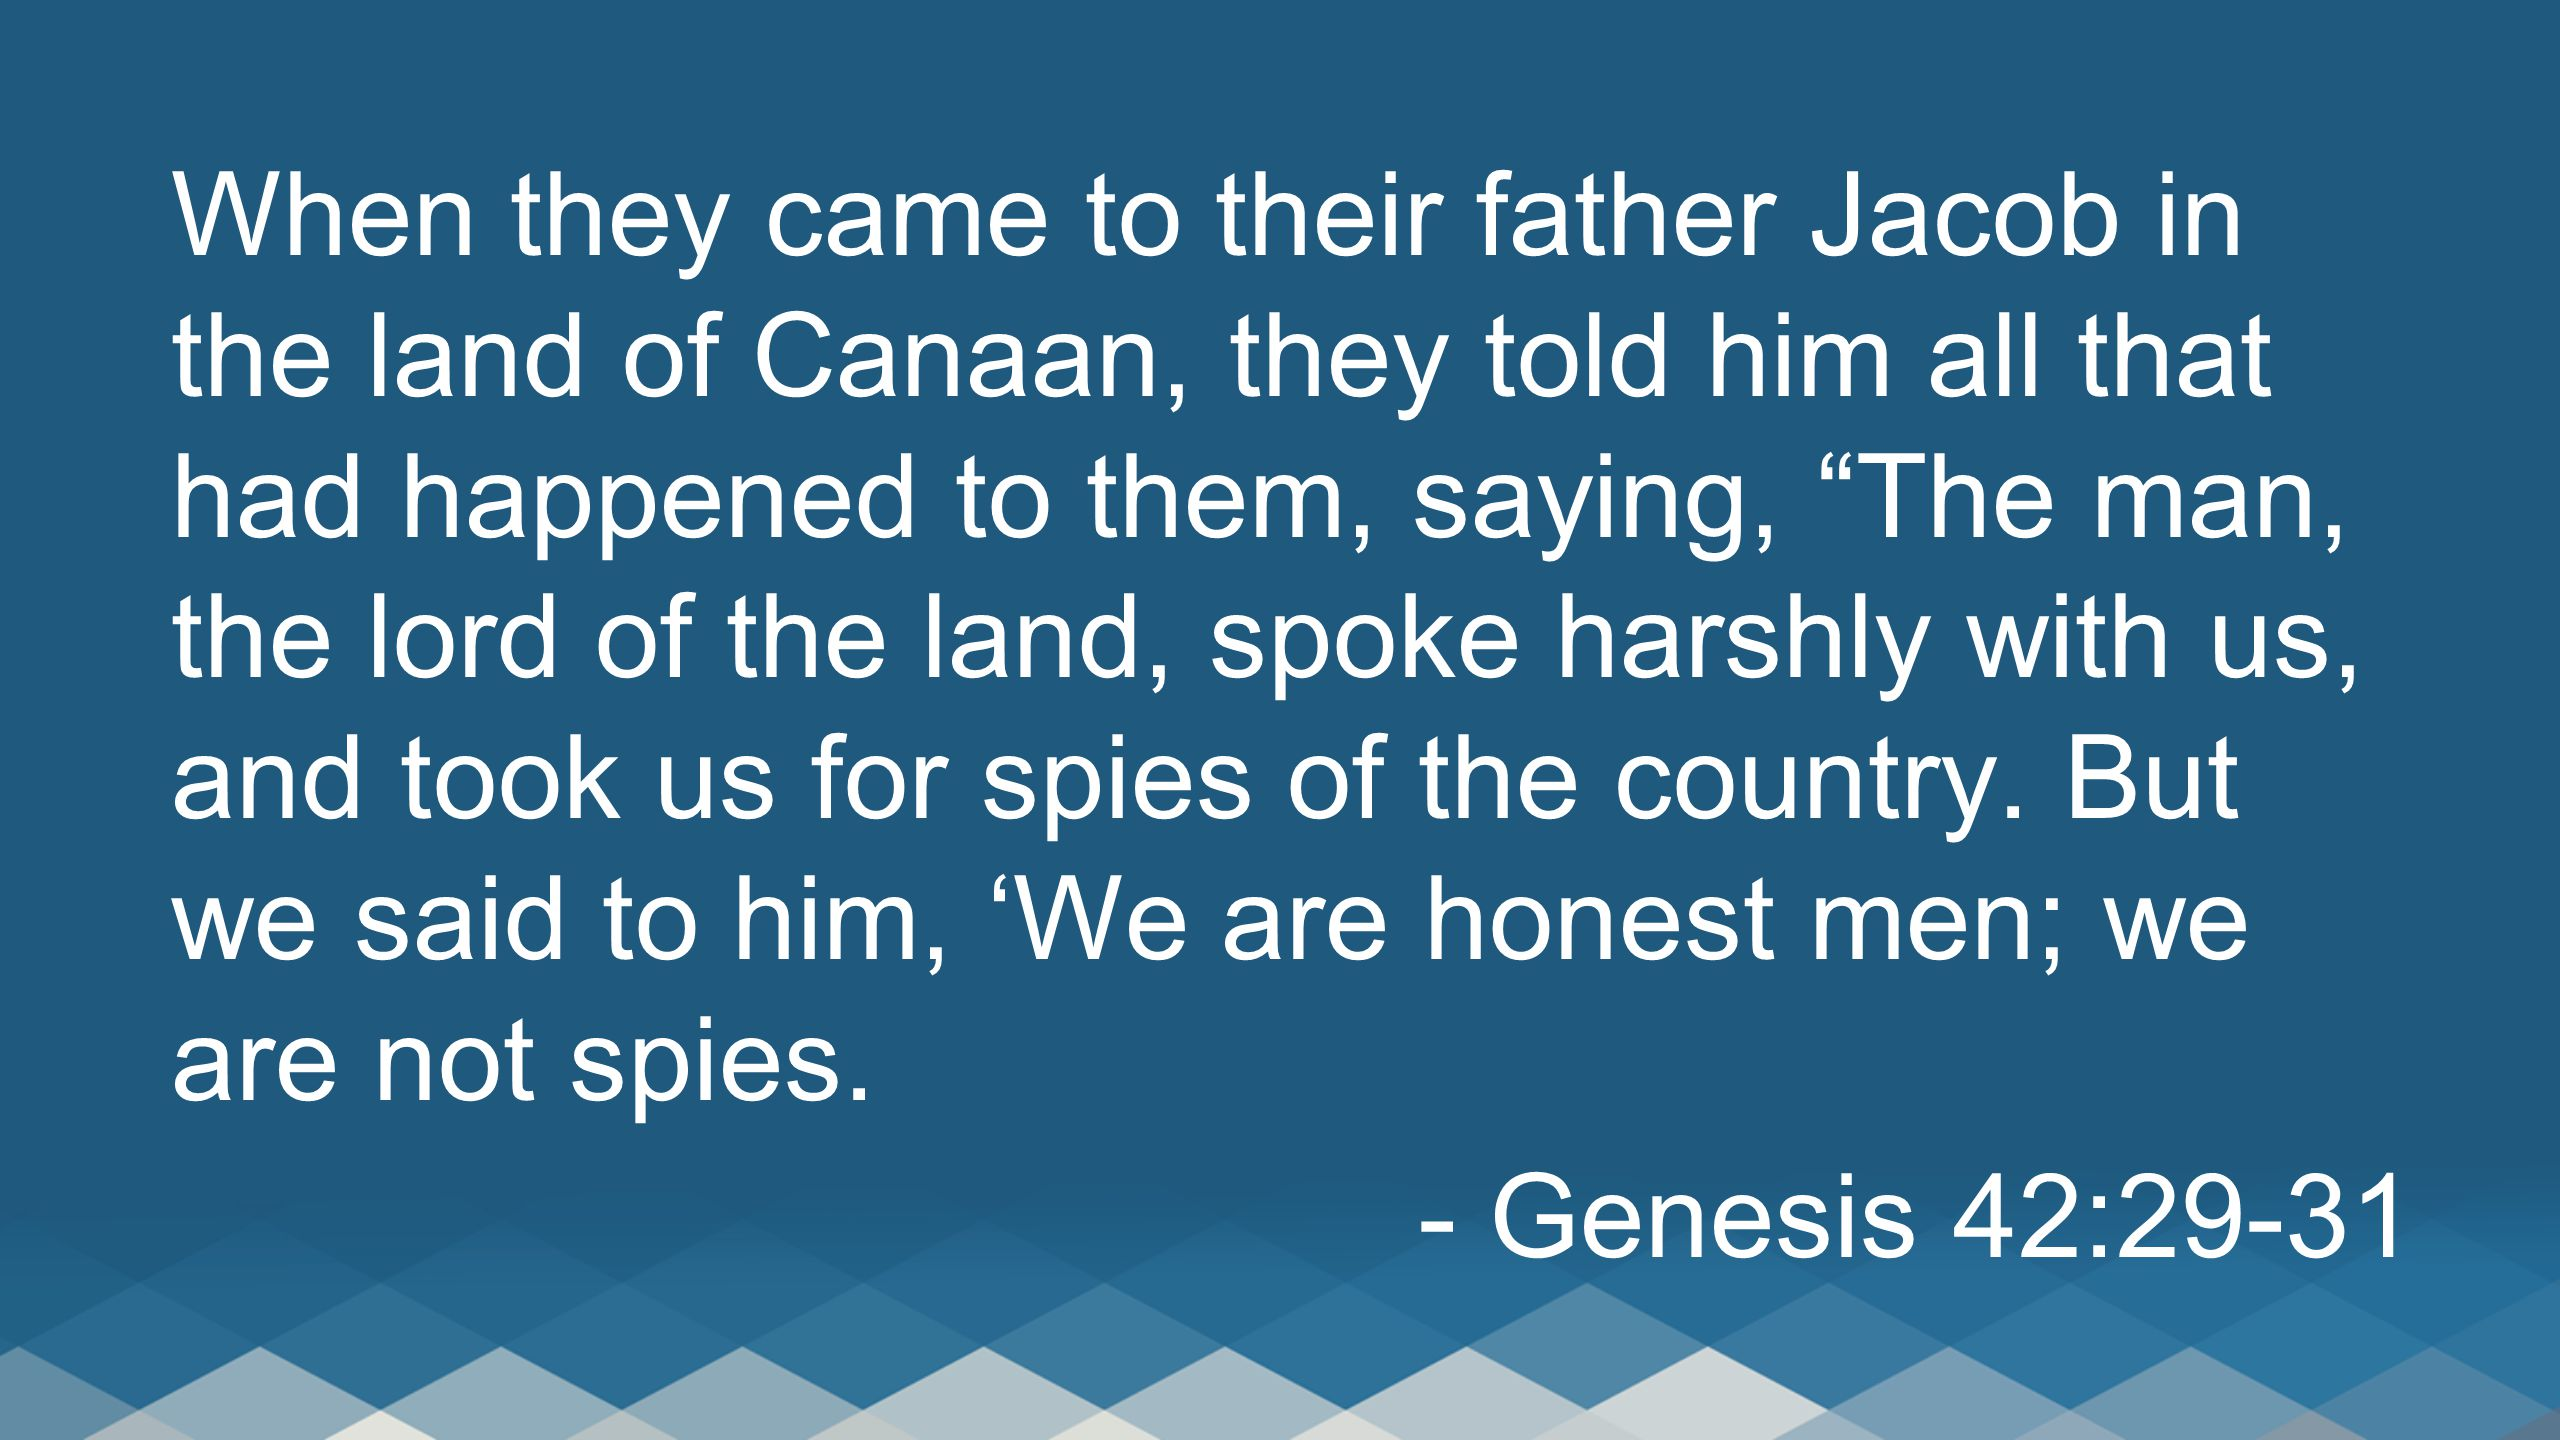 When they came to their father Jacob in the land of Canaan, they told him all that had happened to them, saying, The man, the lord of the land, spoke harshly with us, and took us for spies of the country. But we said to him, 'We are honest men; we are not spies.